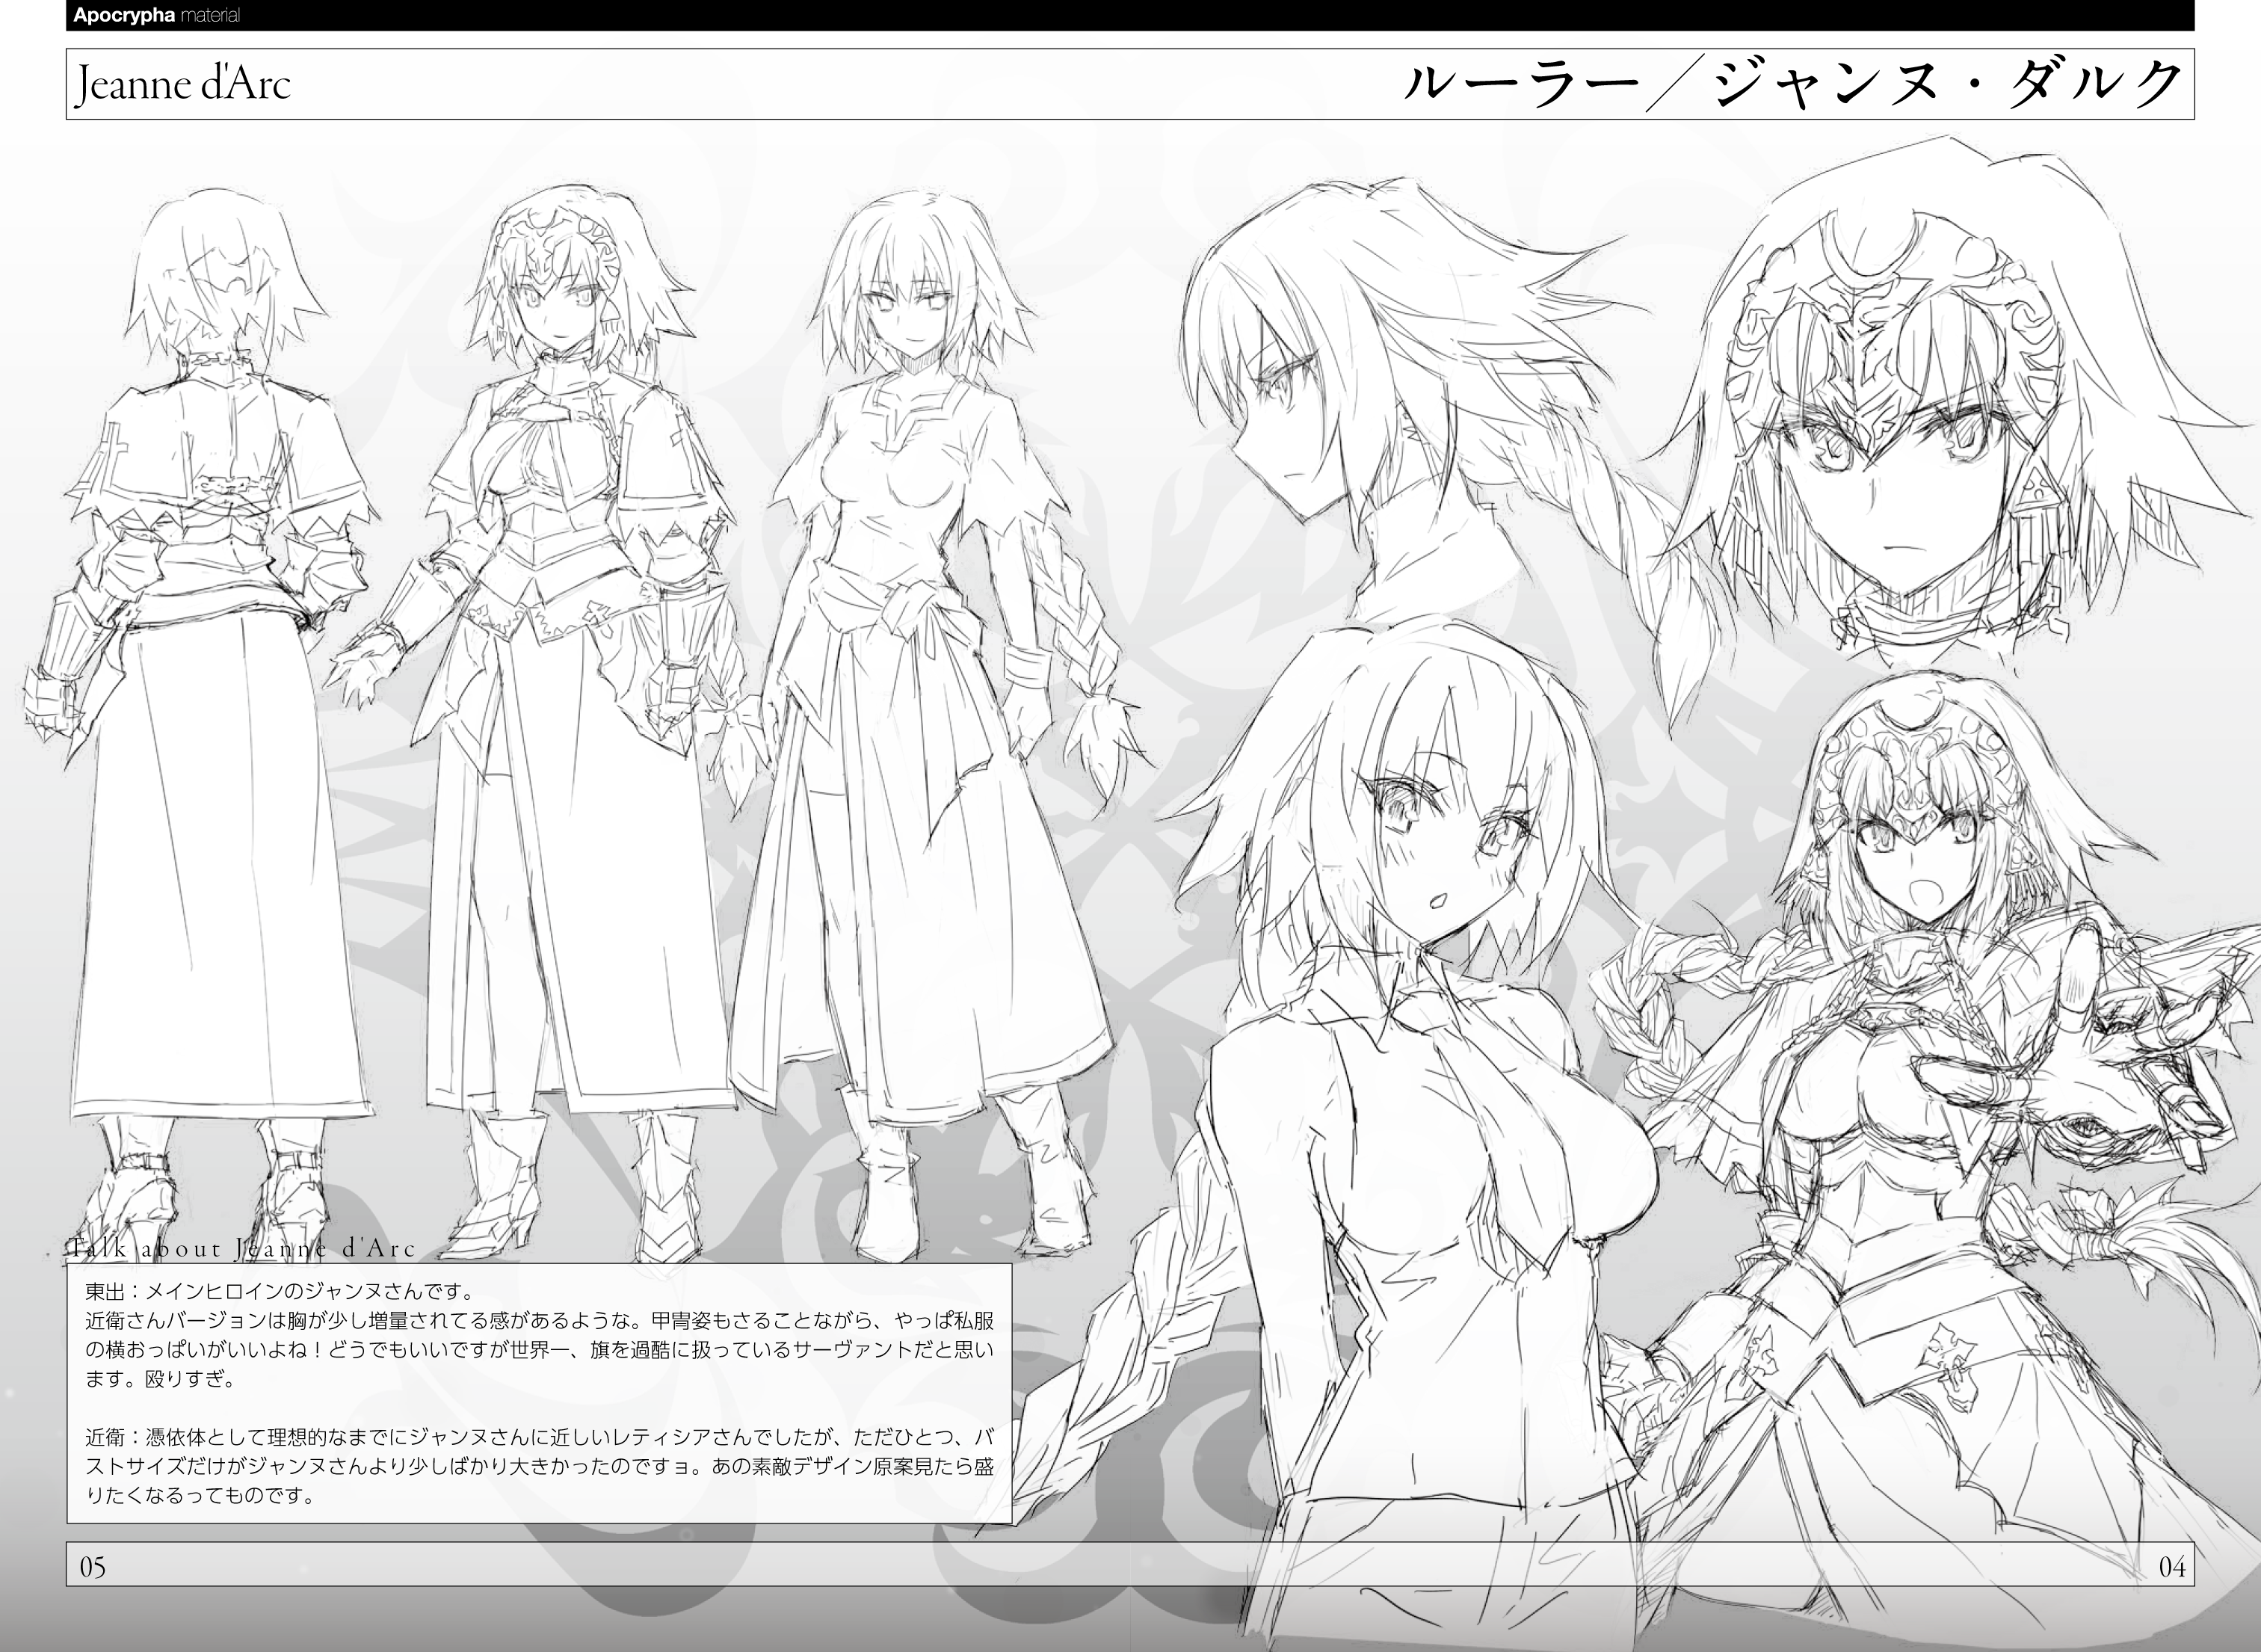 Fate Apocrypha Artbook Is Free to Help Promote TYPE-MOON's Comiket 87 Planned Releases haruhichan.com Character design 1